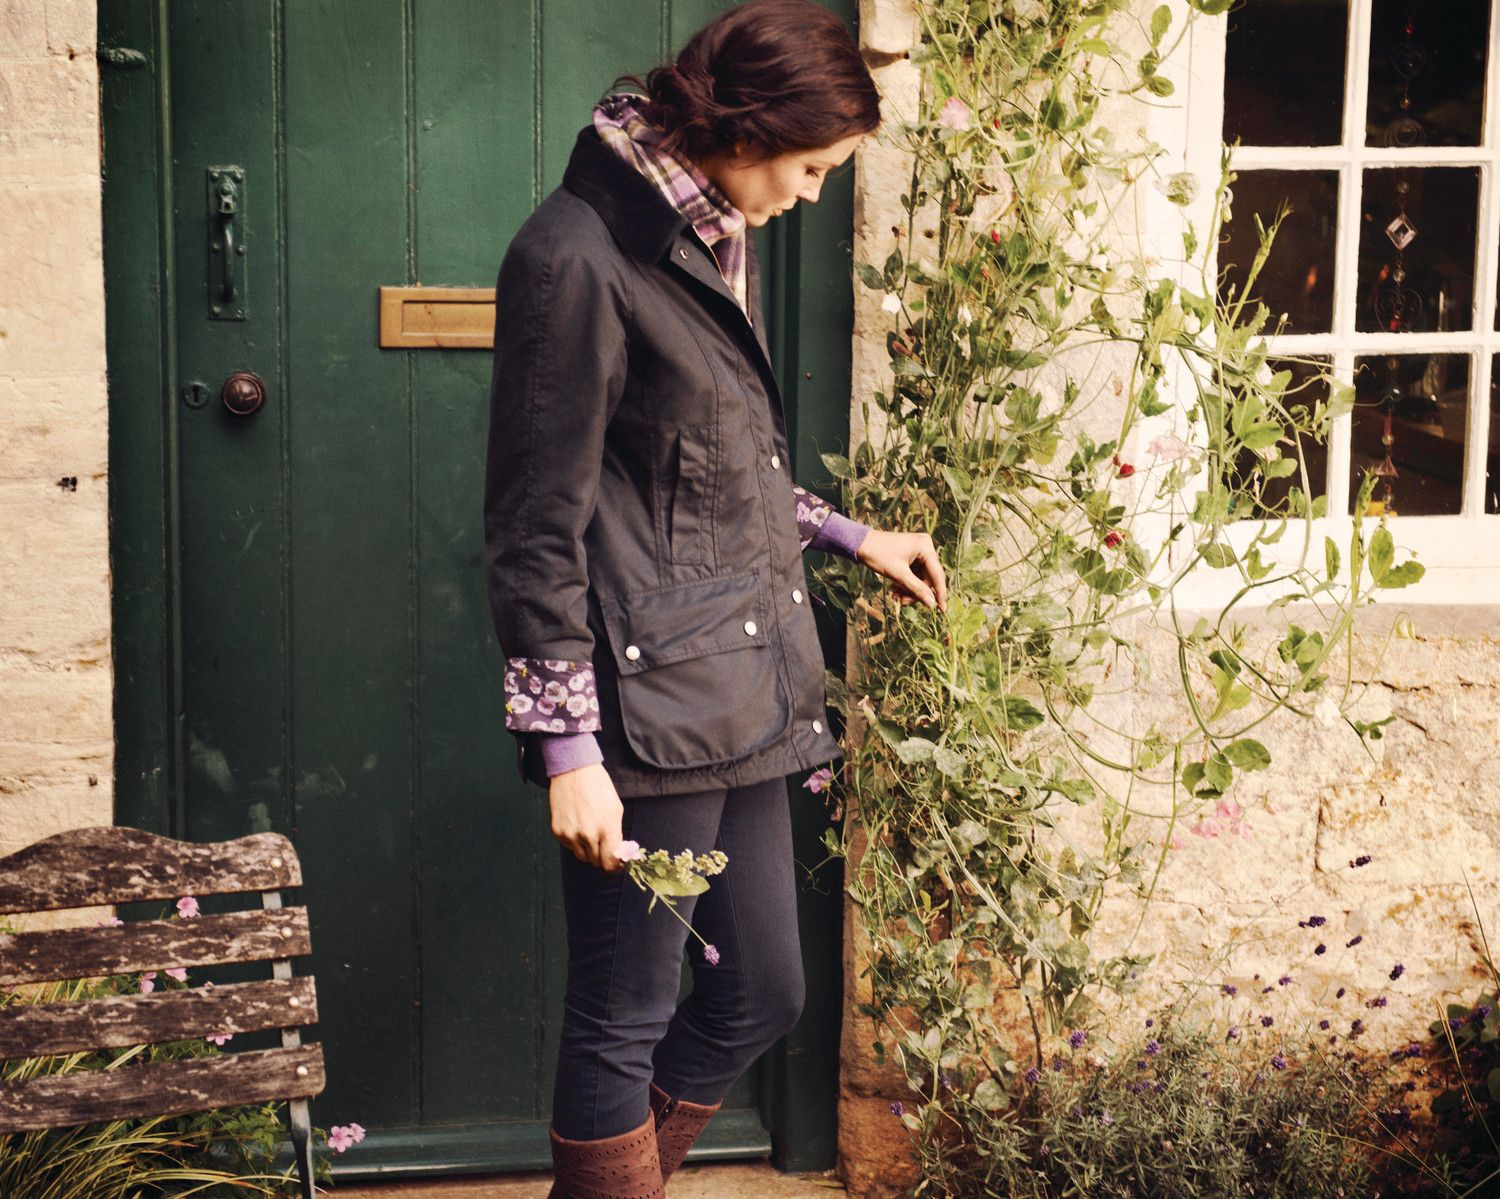 Barbour Jackets At Country House Outdoor Www Countryhouseoutdoor Co Uk Barbour Jacket Barbour Barbour Style